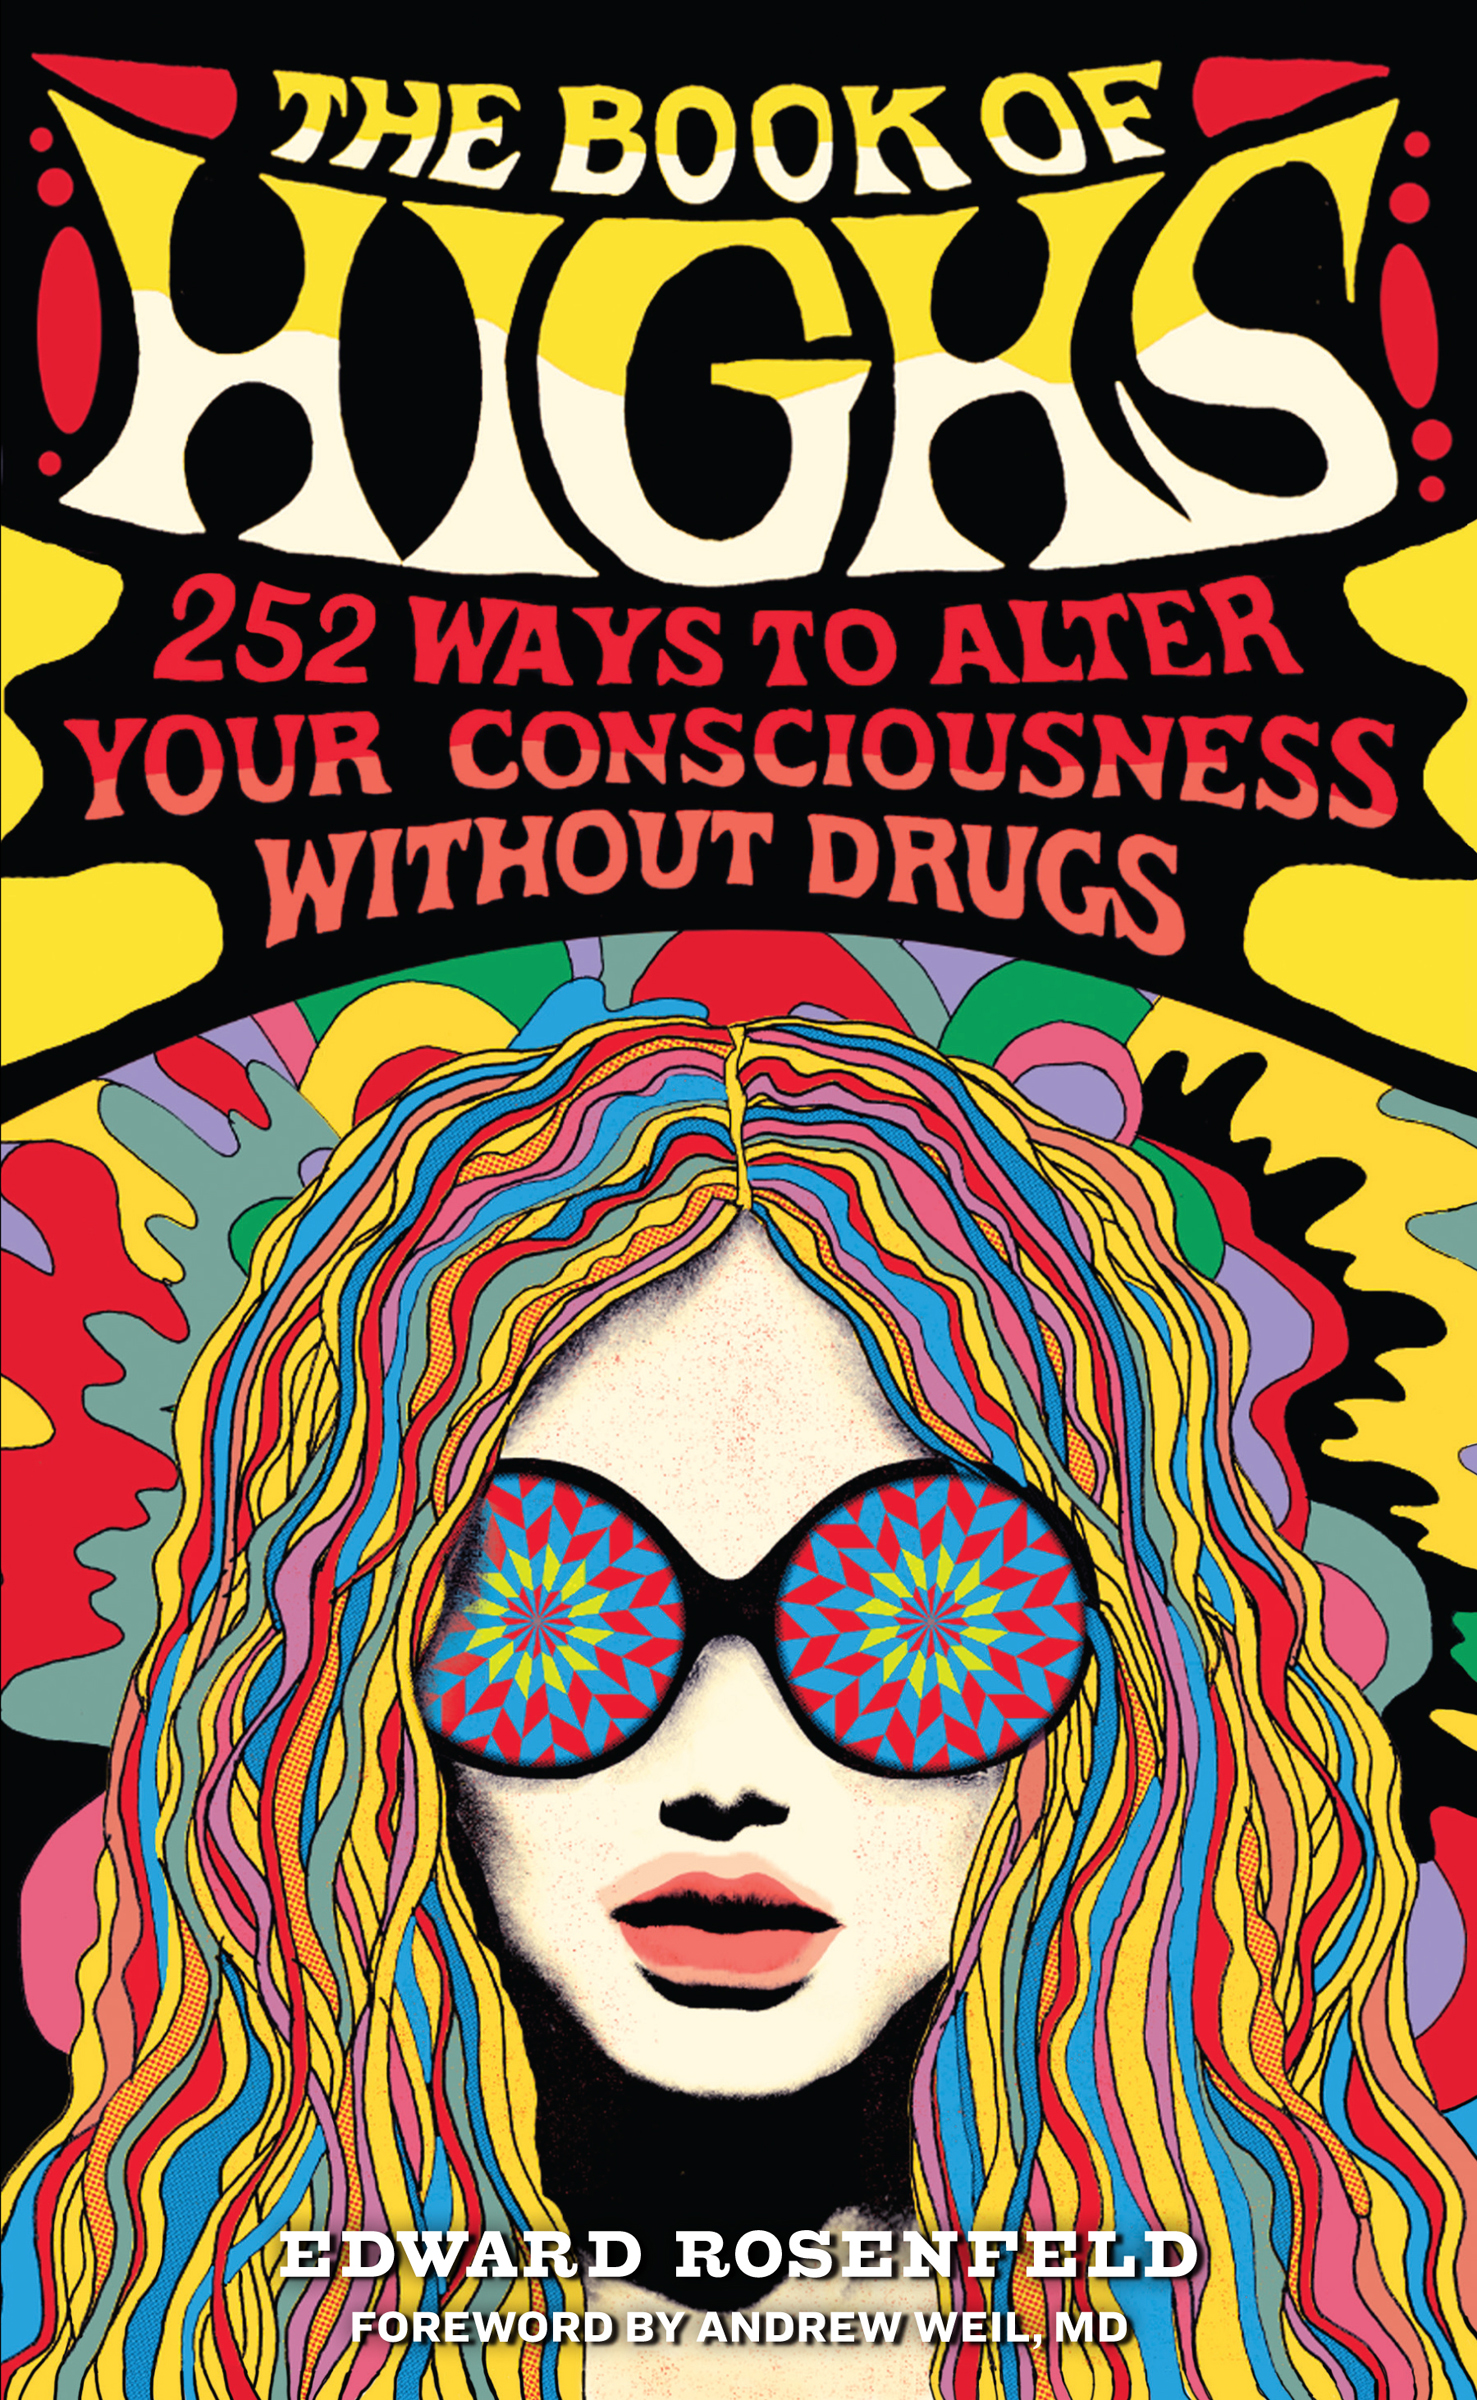 The Book of Highs 255 Ways to Alter Your Consciousness without Drugs